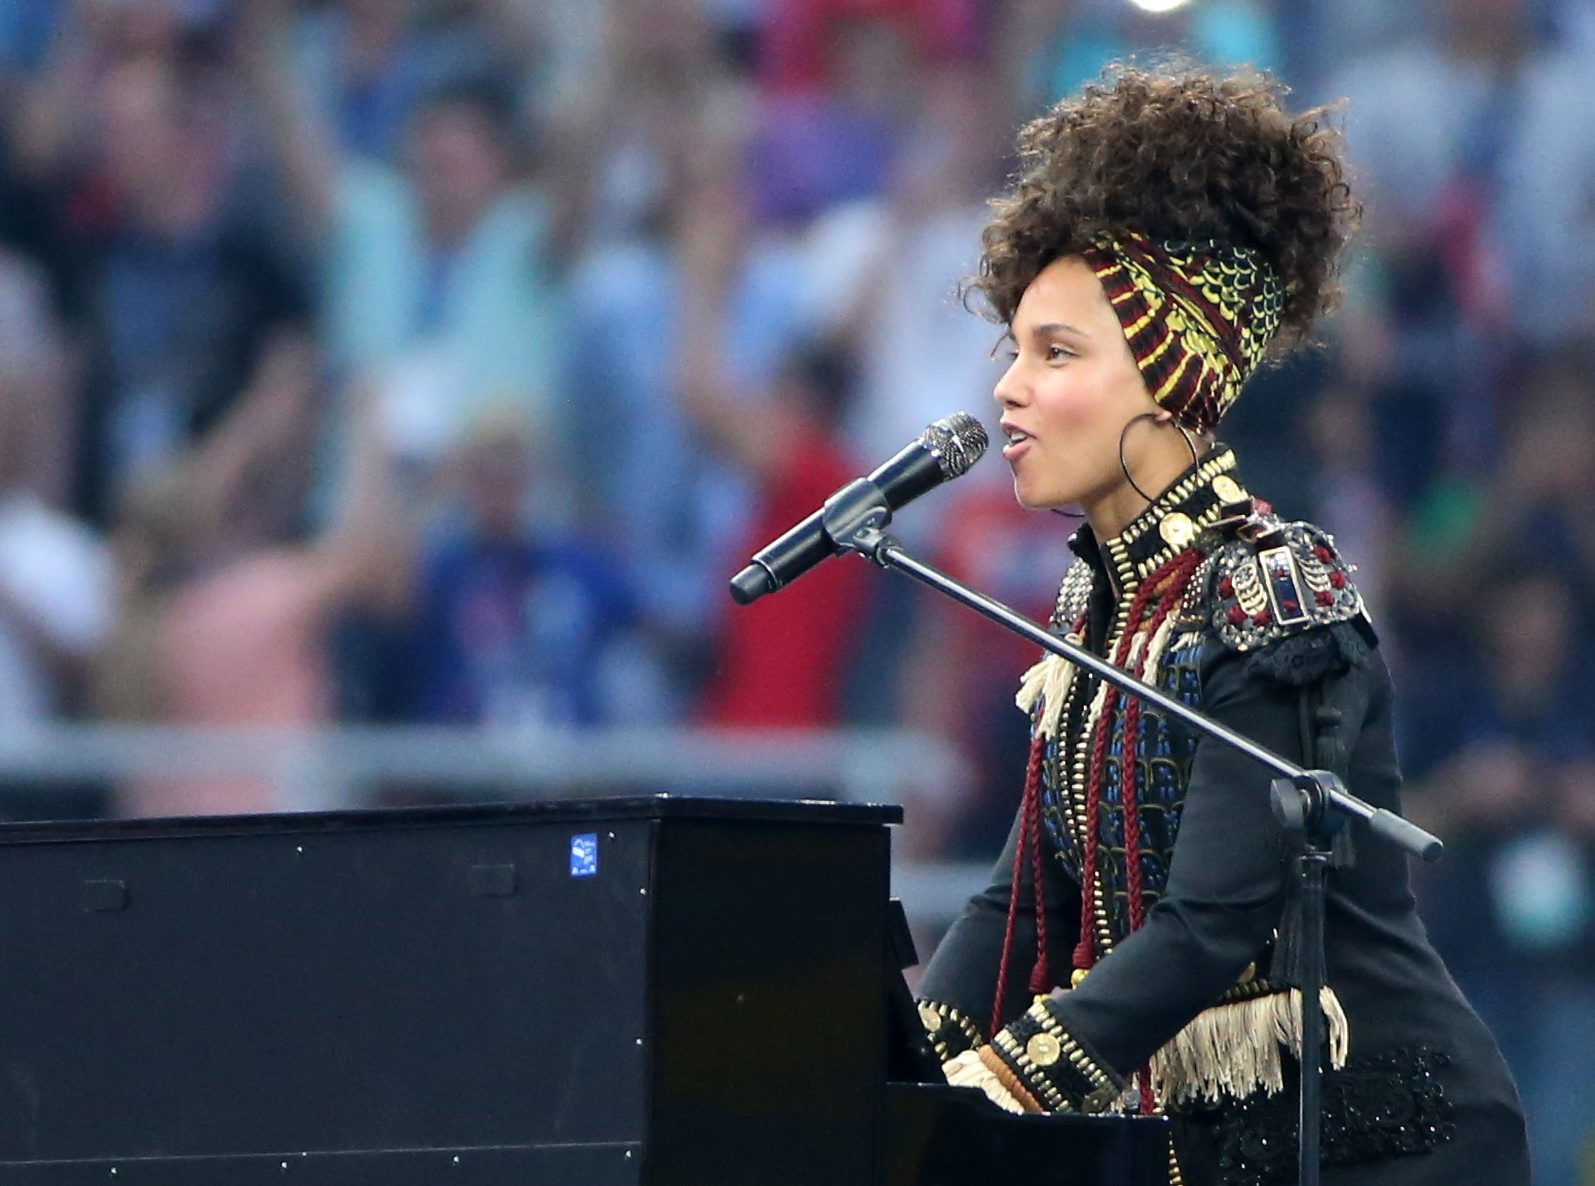 . Milan (Italy), 28/05/2016.- US musician Alicia Keys performs before the UEFA Champions League Final 2016 between Real Madrid and Atletico Madrid at the Giuseppe Meazza stadium in Milan, Italy, 28 May 2016. (Liga de Campeones, Italia) EFE/EPA/OLIVER WEIKEN